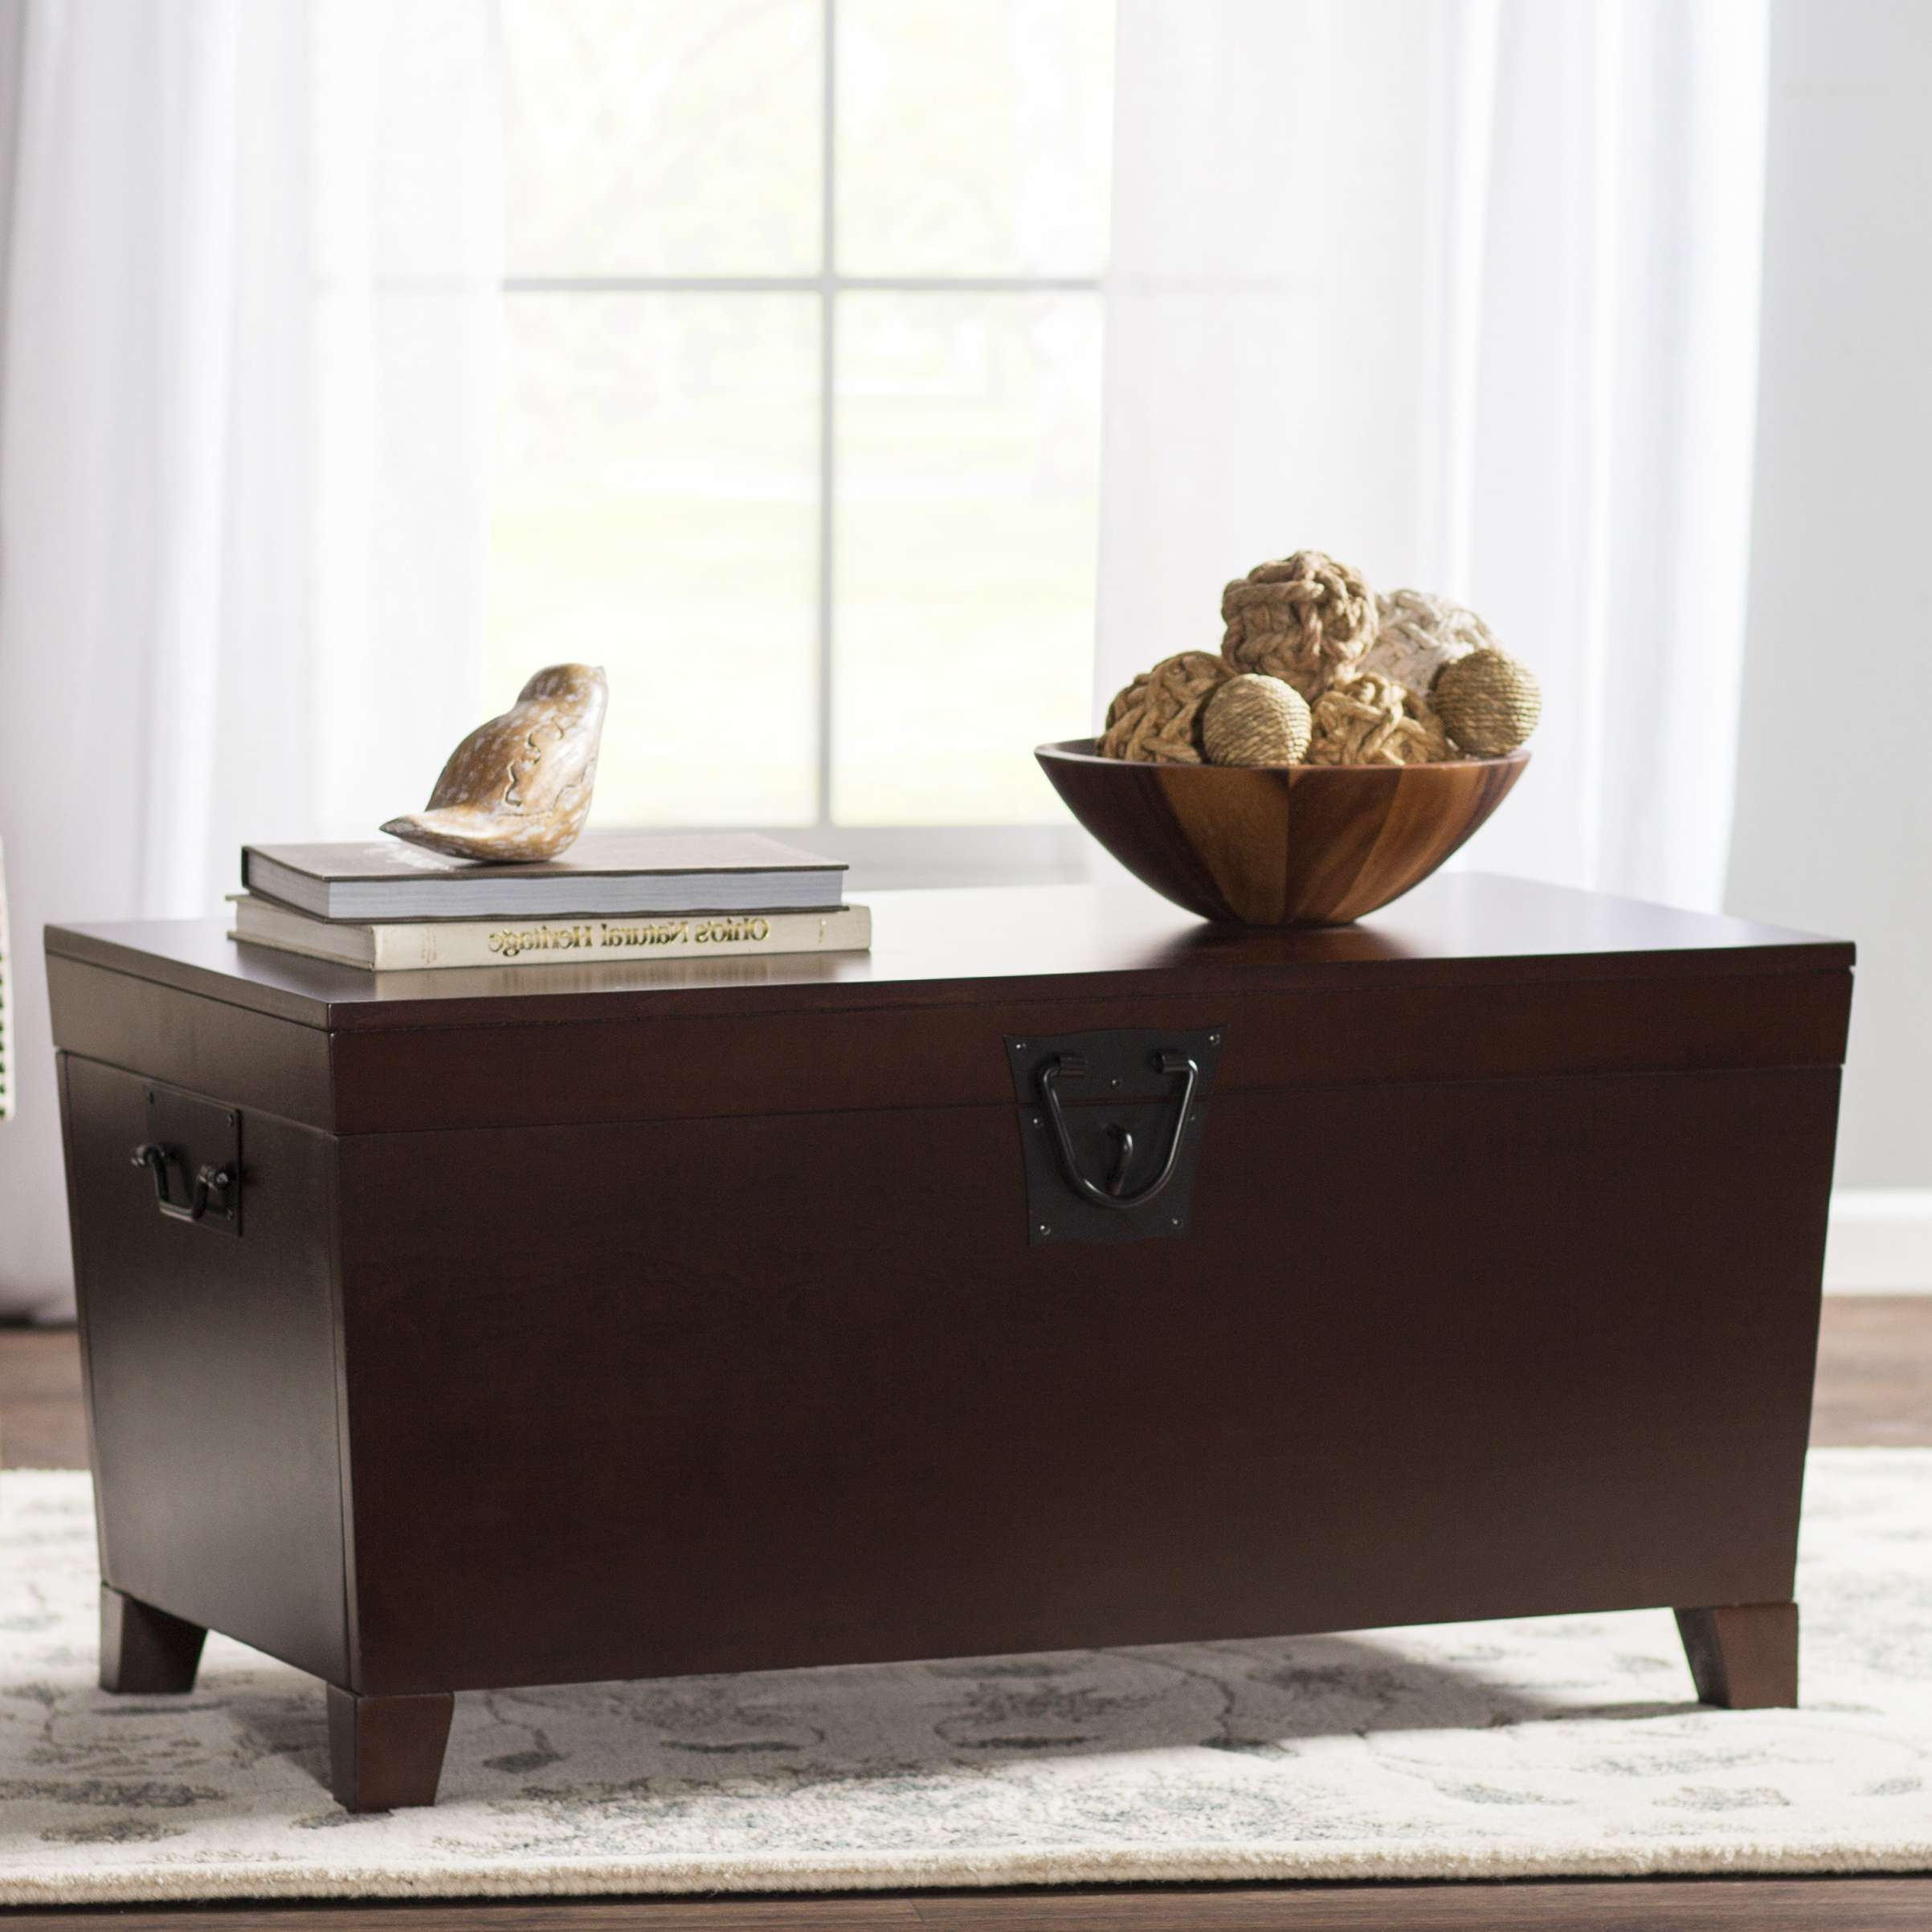 Most Recent Trunk Coffee Tables With Regard To Charlton Home Bischoptree Storage Trunk Coffee Table & Reviews (View 15 of 20)